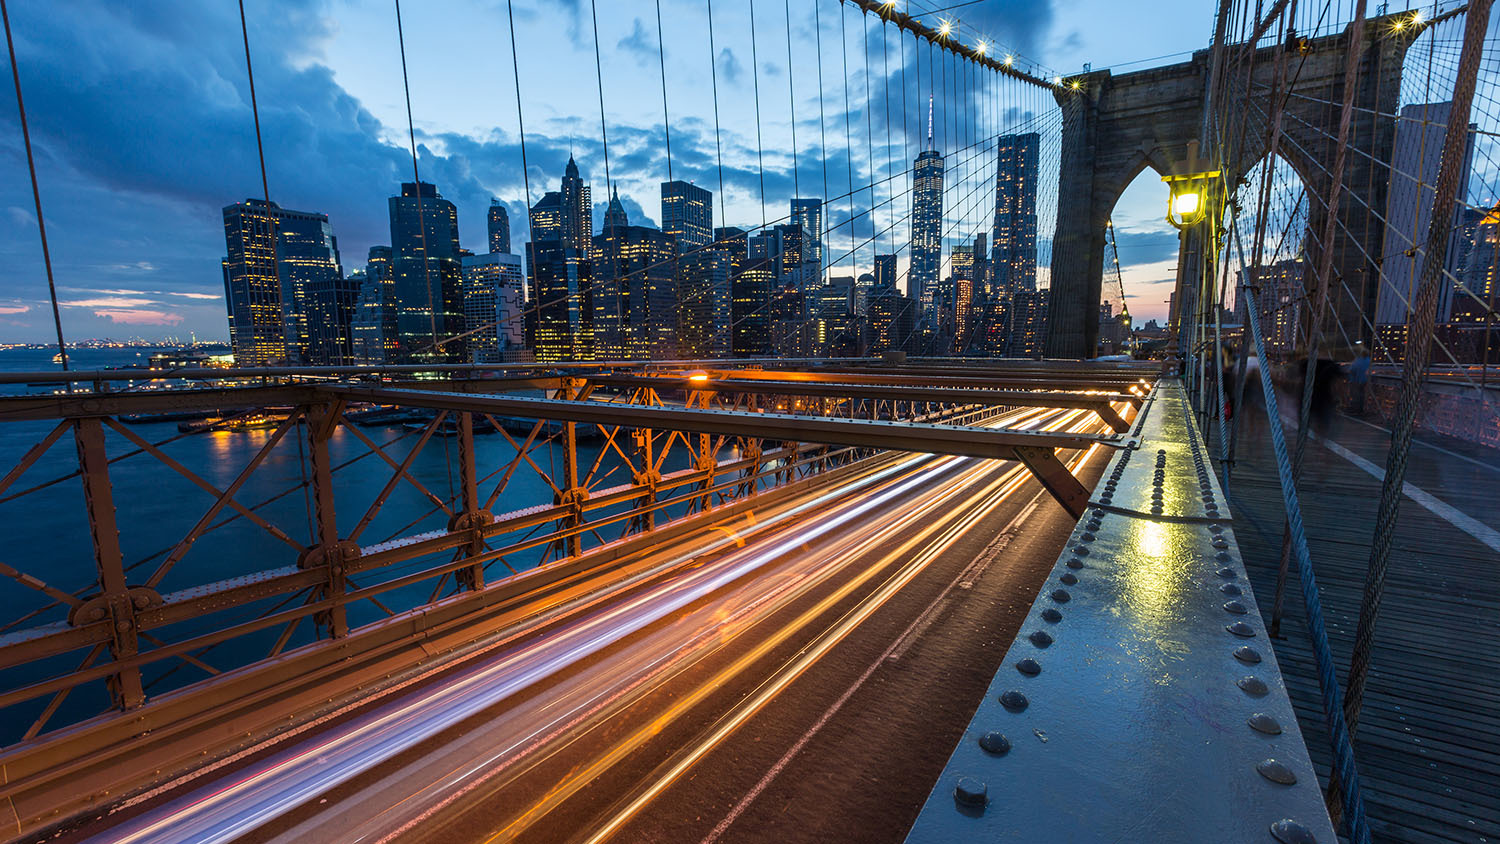 Explore these stunning photos of New York at night